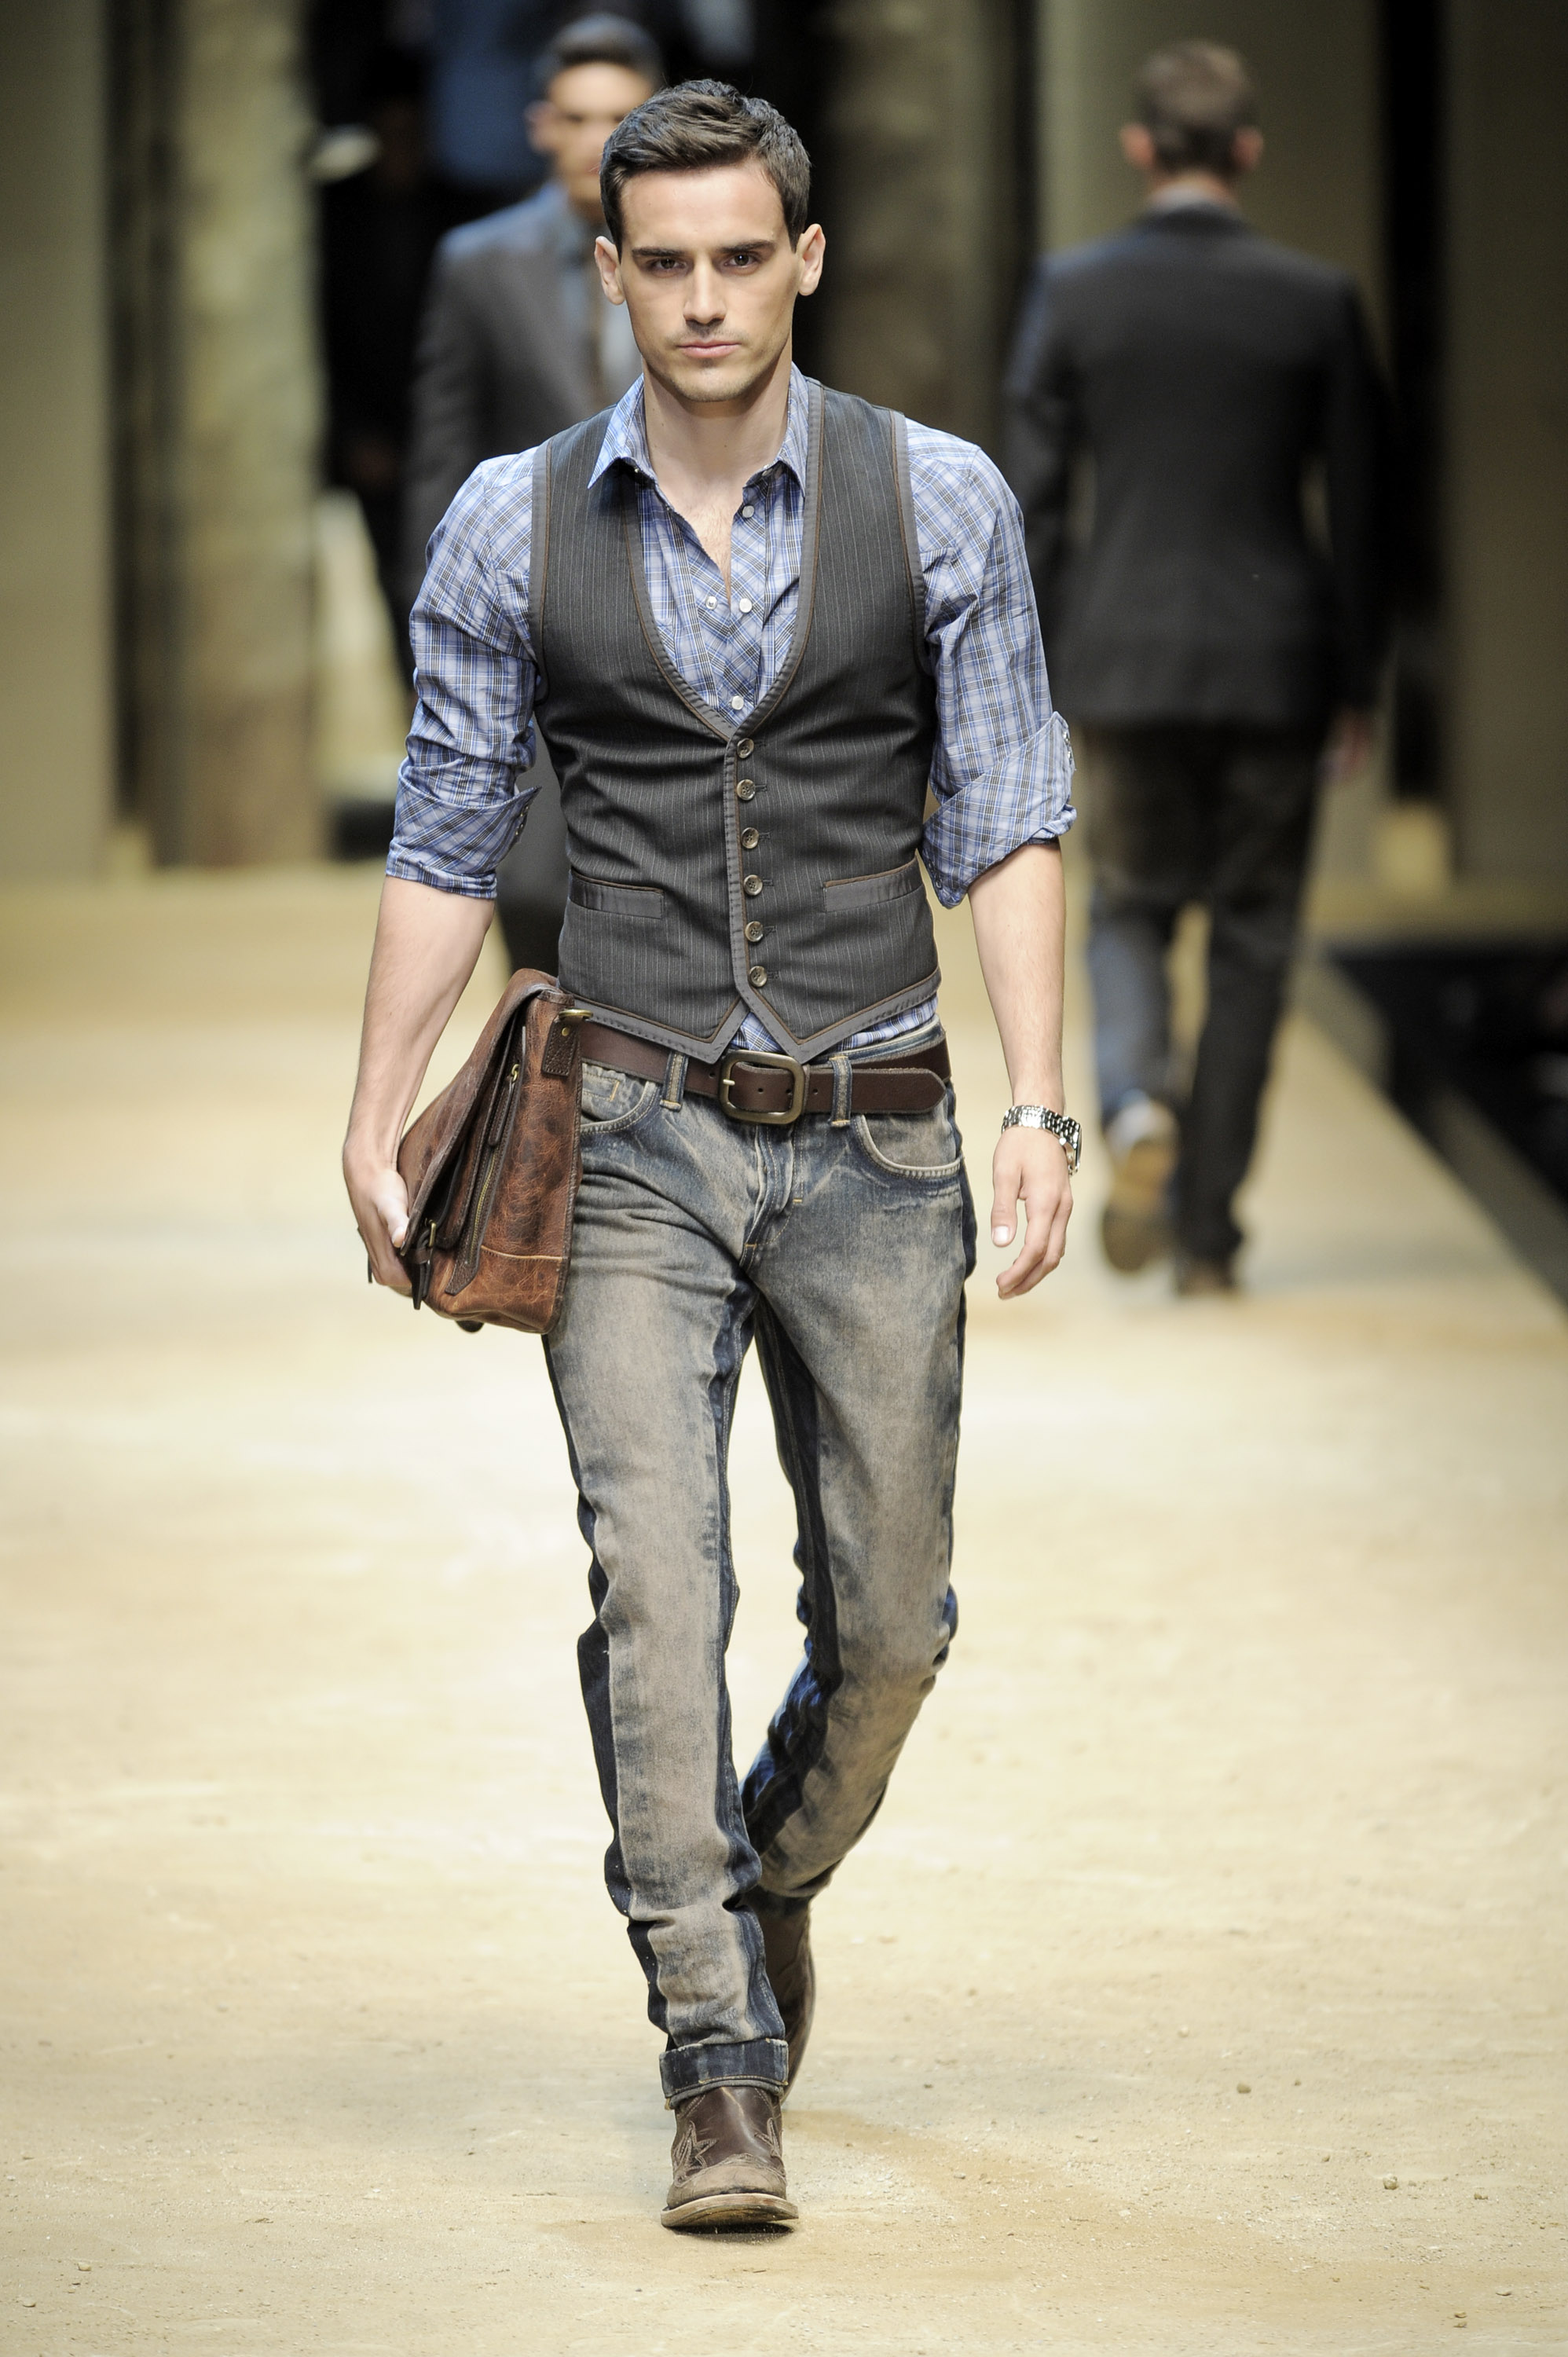 D&G - Milan Fashion Week Menswear S/S 2010